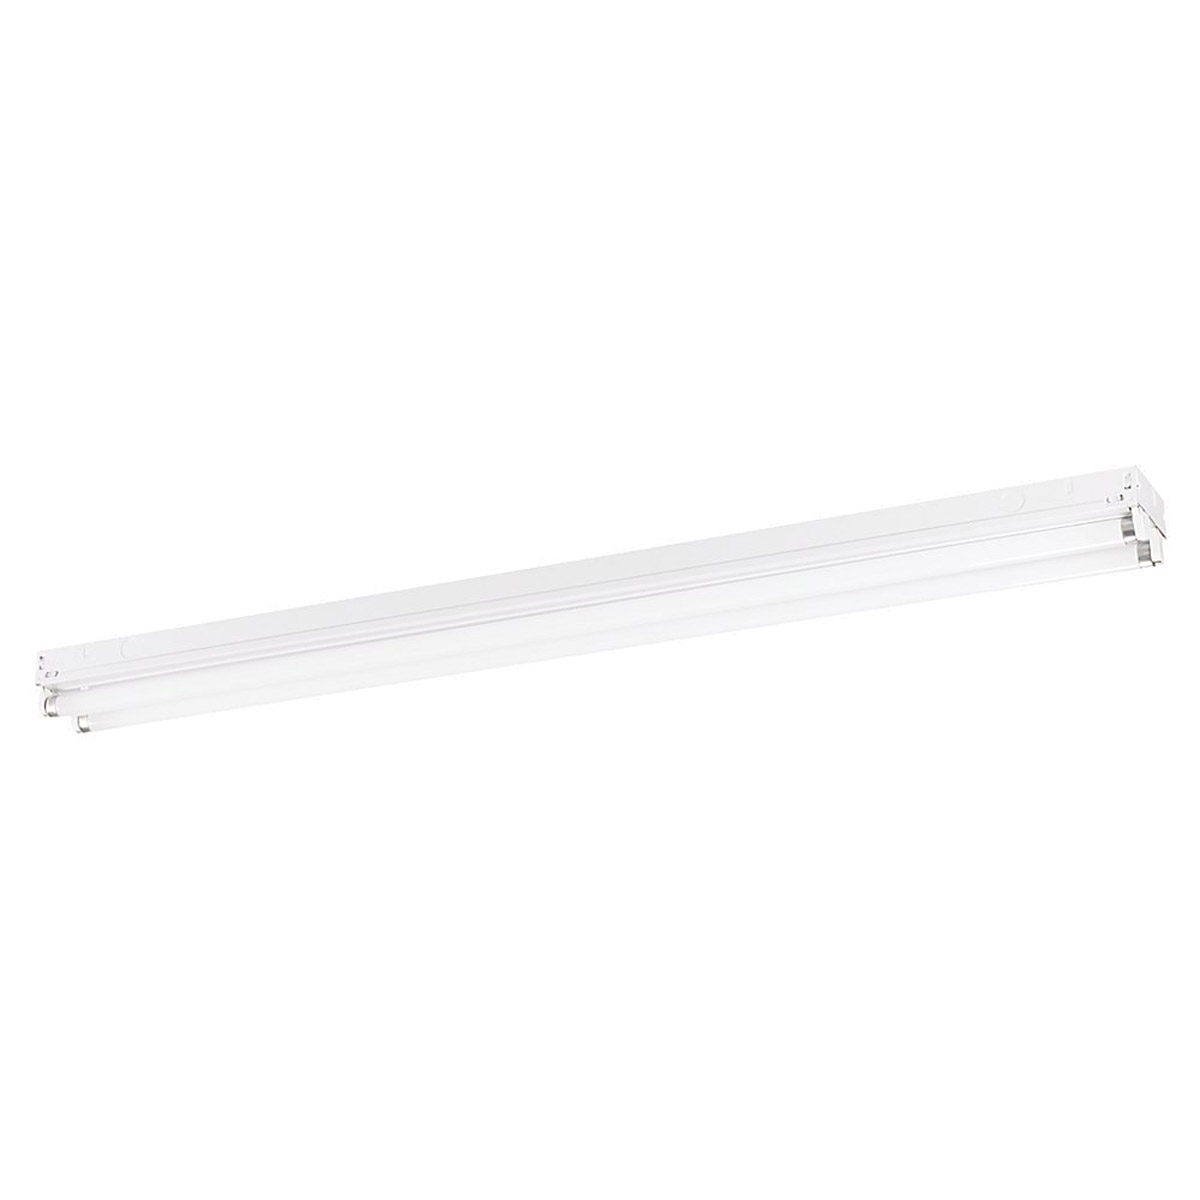 Sea Gull Lighting Signature 2 Light Fluorescent Strip Light in White 59023L-15 photo